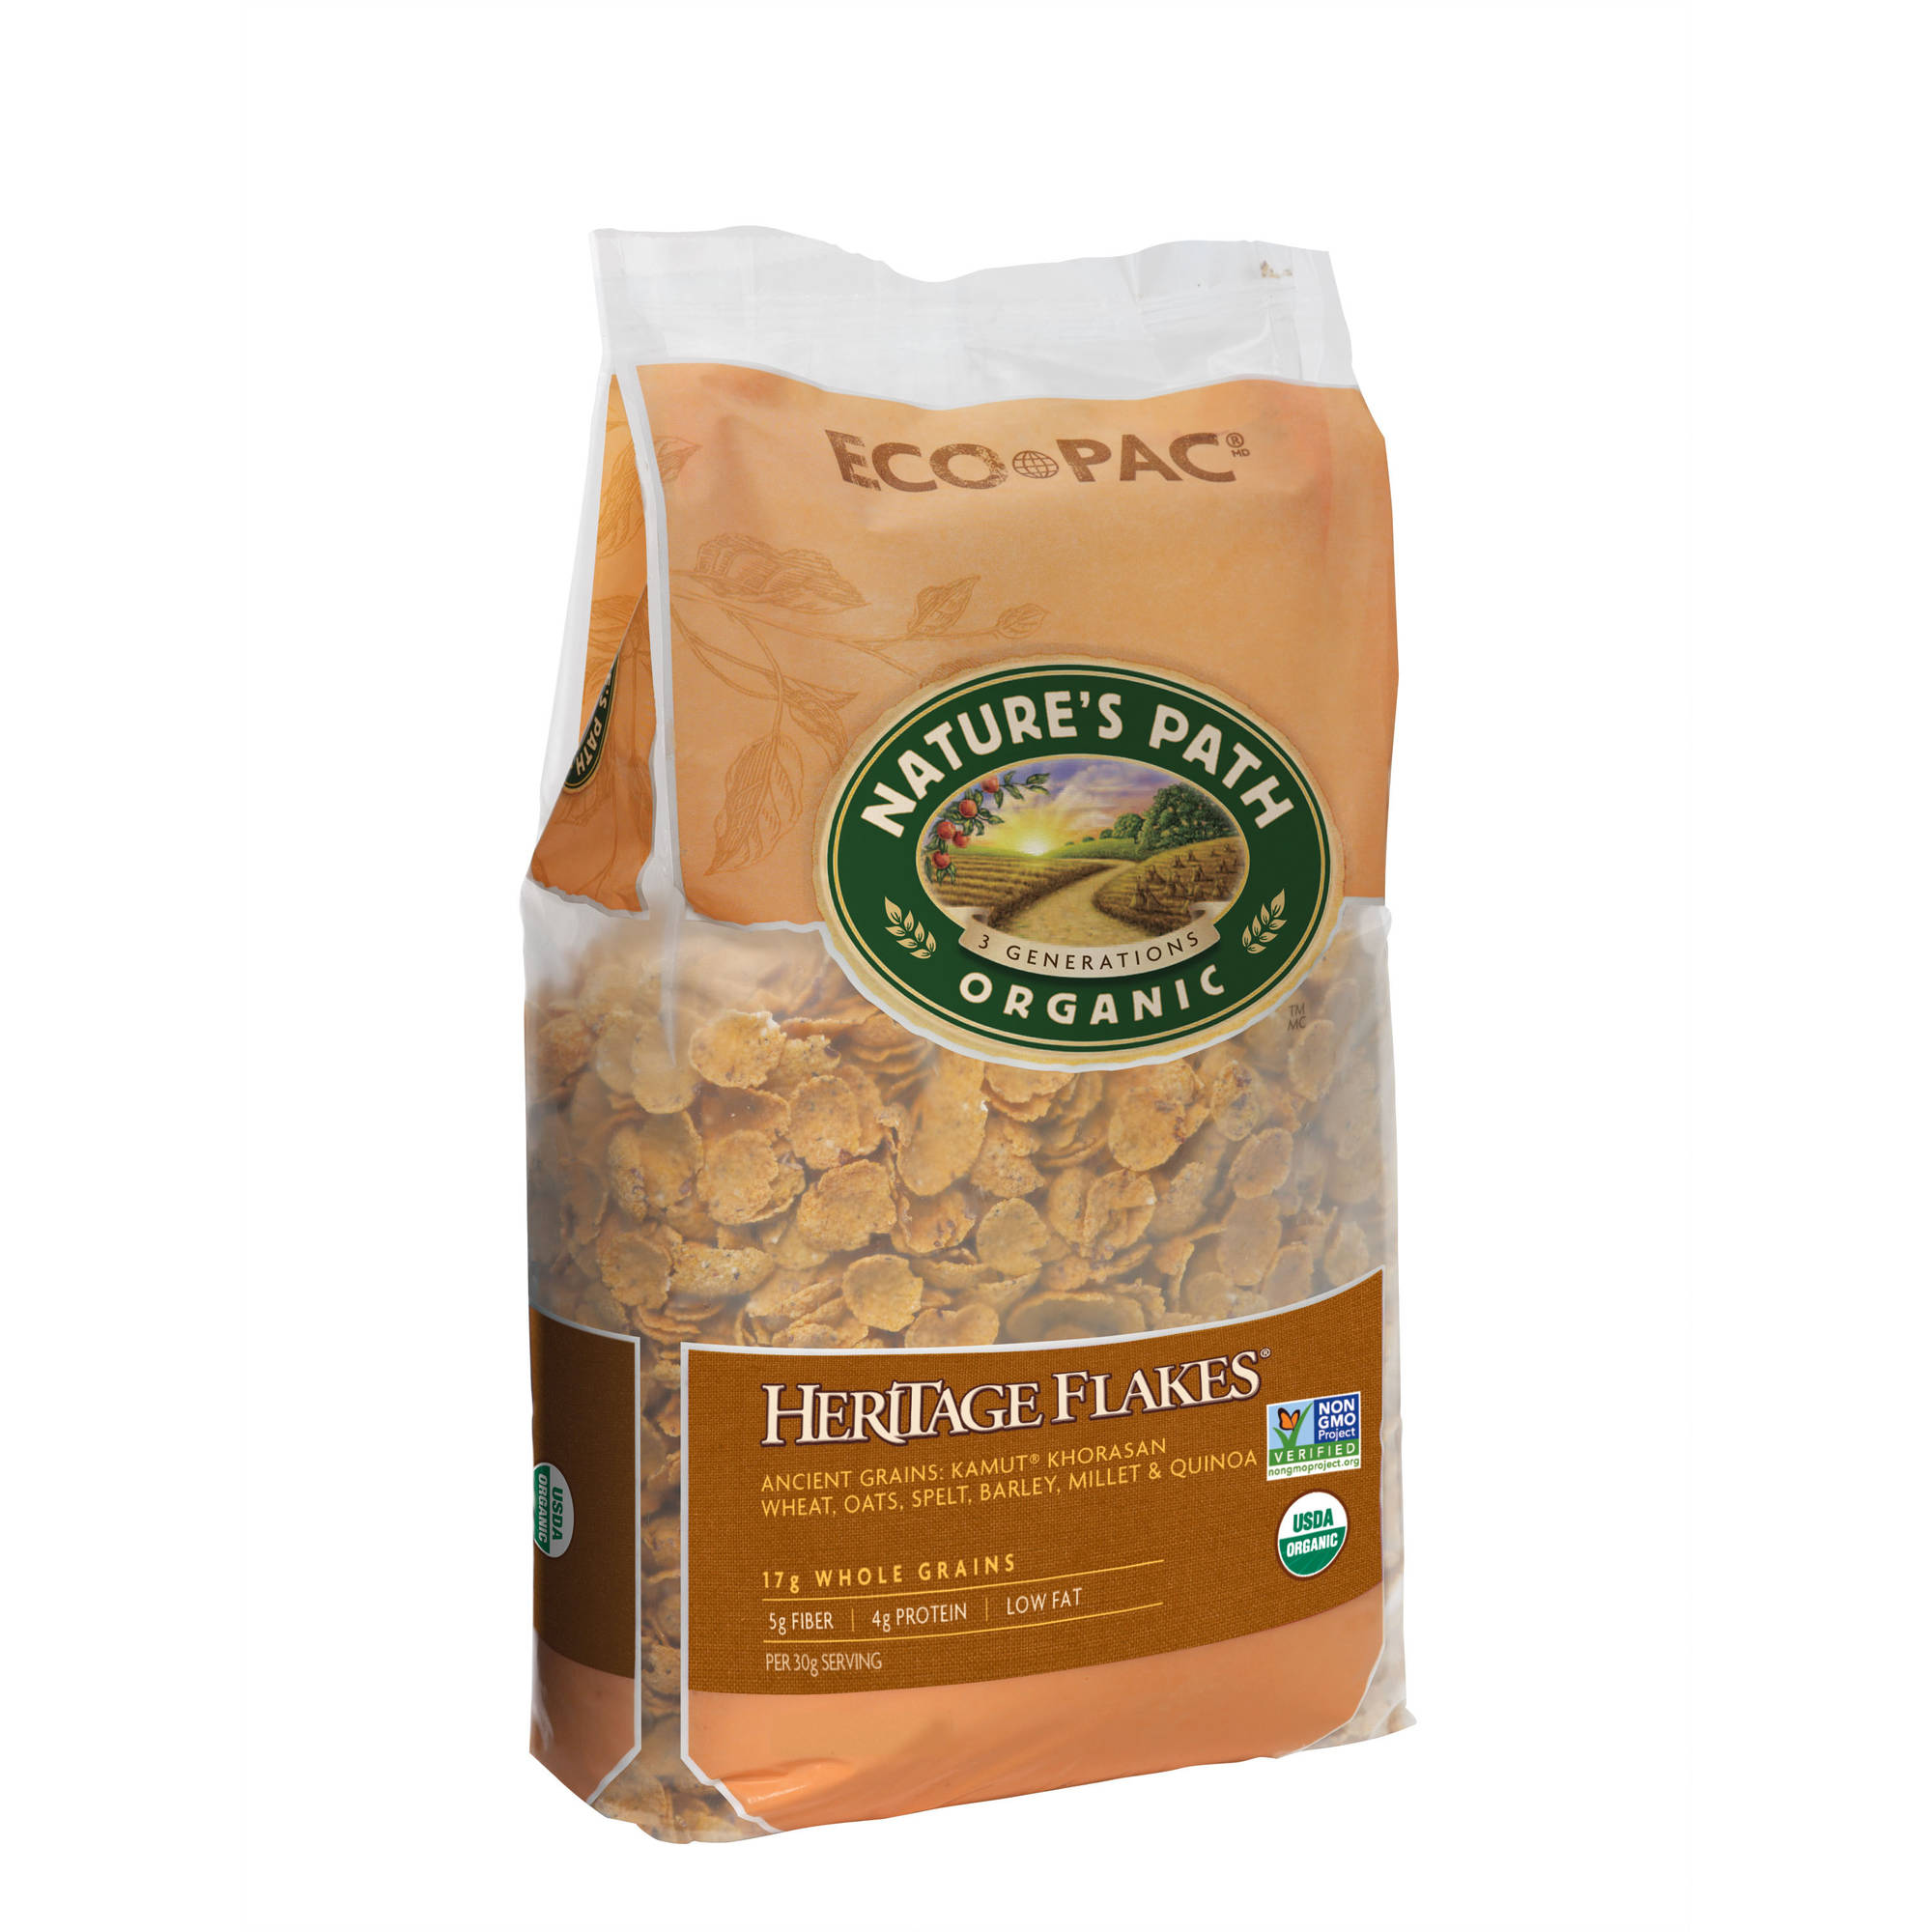 Nature's Path Organic Cereal, Heritage Flakes, Whole Grains, Ancient Grains 32 oz